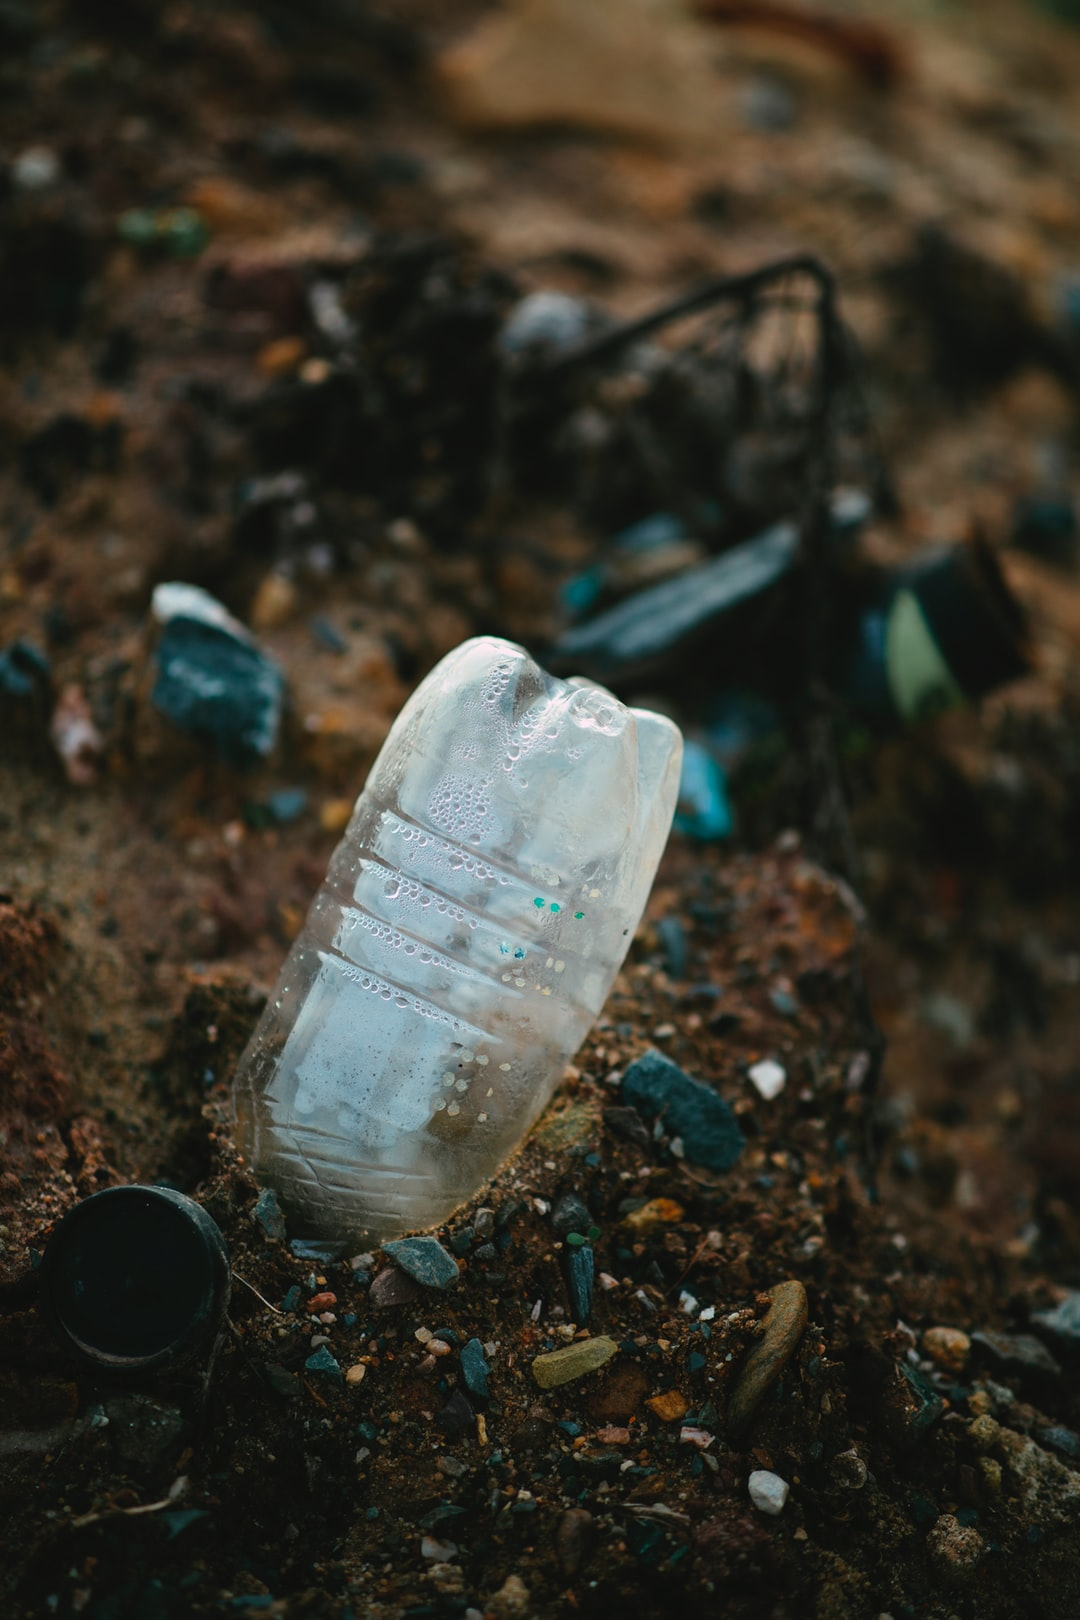 Plastic waste bottle pollution of the environment